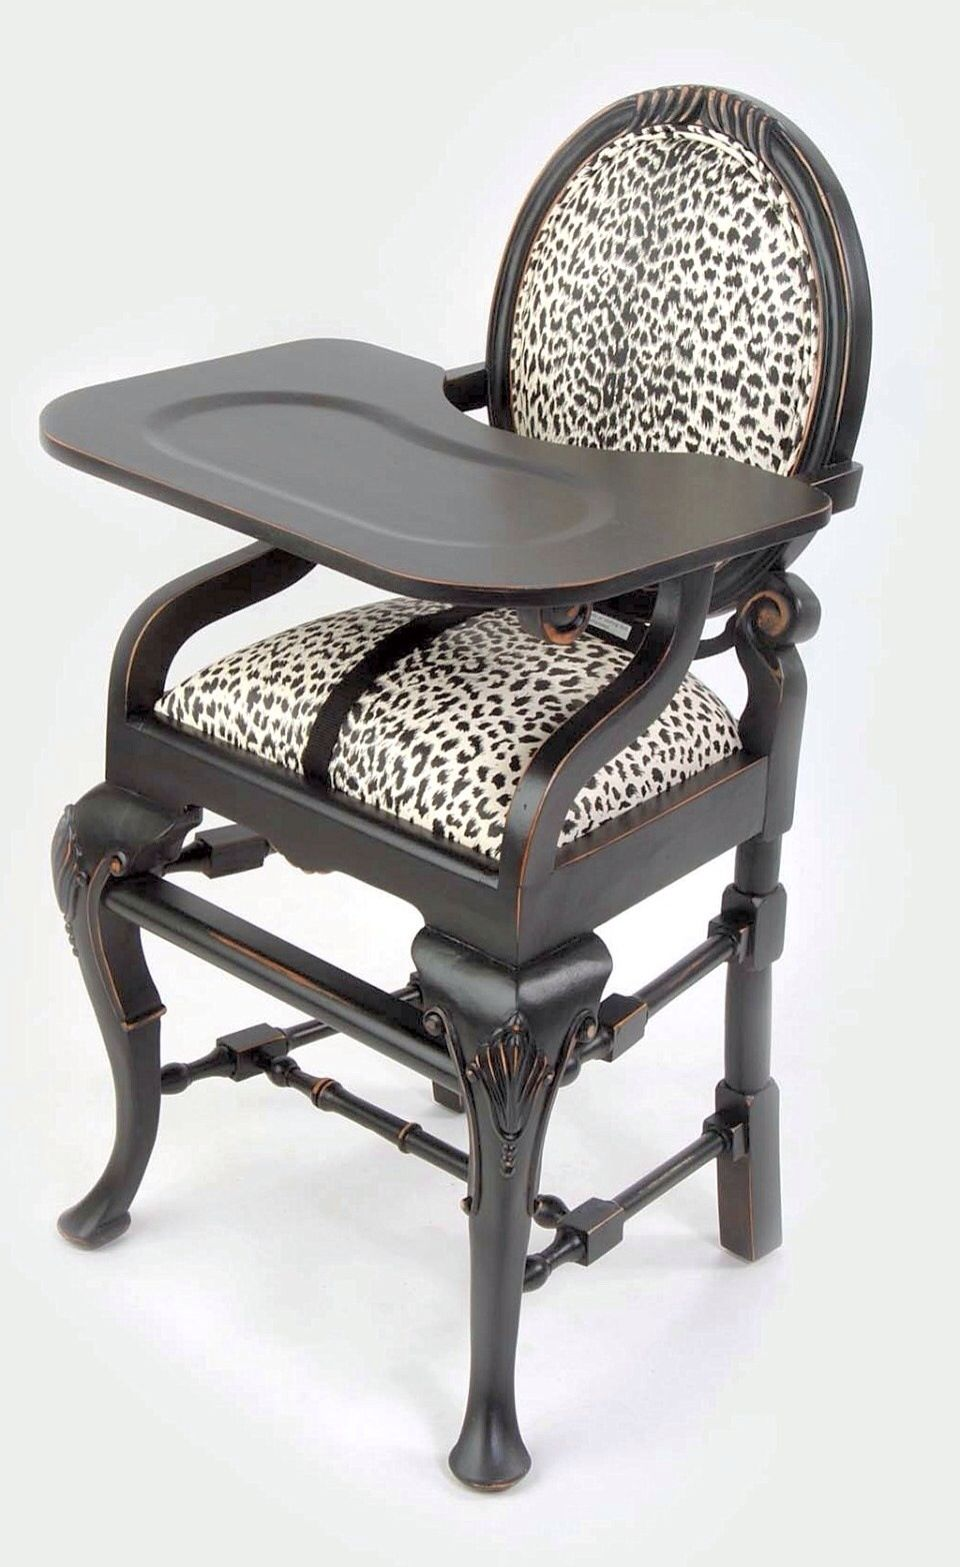 Cheetah High Chair Baby Furniture, Baby Time, Rocking Chair, Baby Chair,  Desk